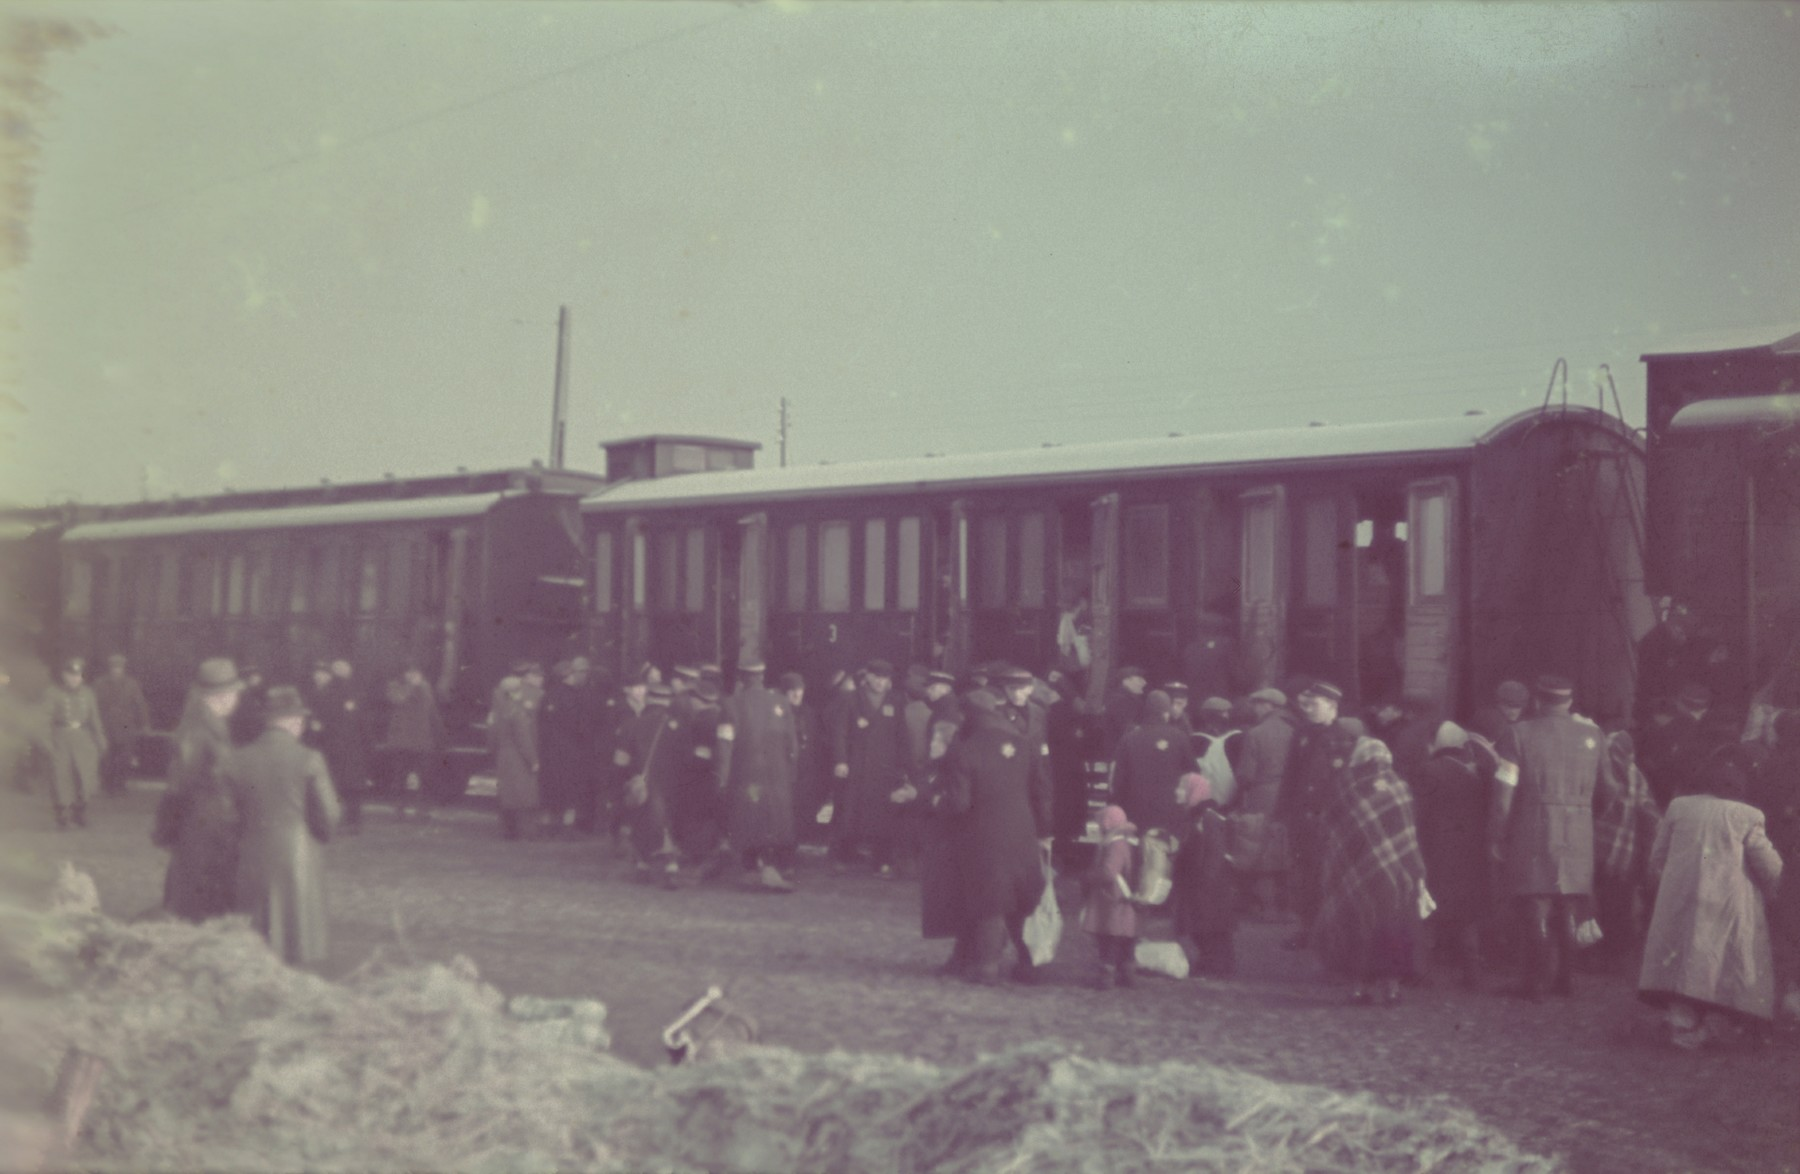 """Jews board a passenger train during a deportation action in the Lodz ghetto.  Original German caption: """"Judenaussiedlung"""" (Jewish resettlement), April 1942, #134."""